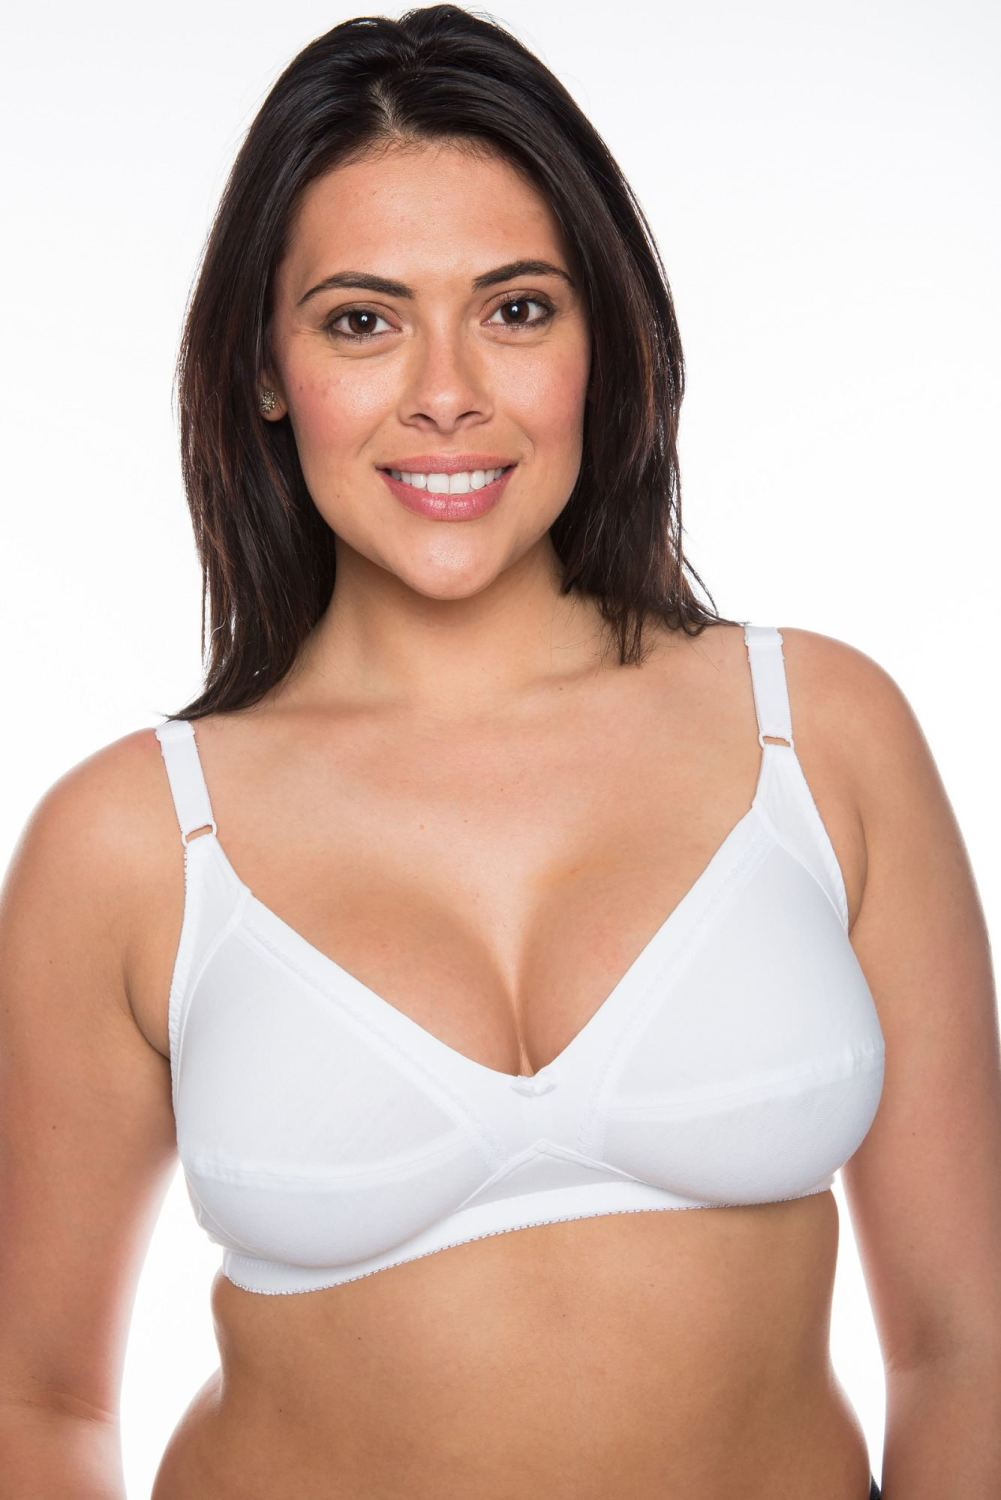 CB235 - 20 Cotton Bras with Lycra - only £3.00 Each